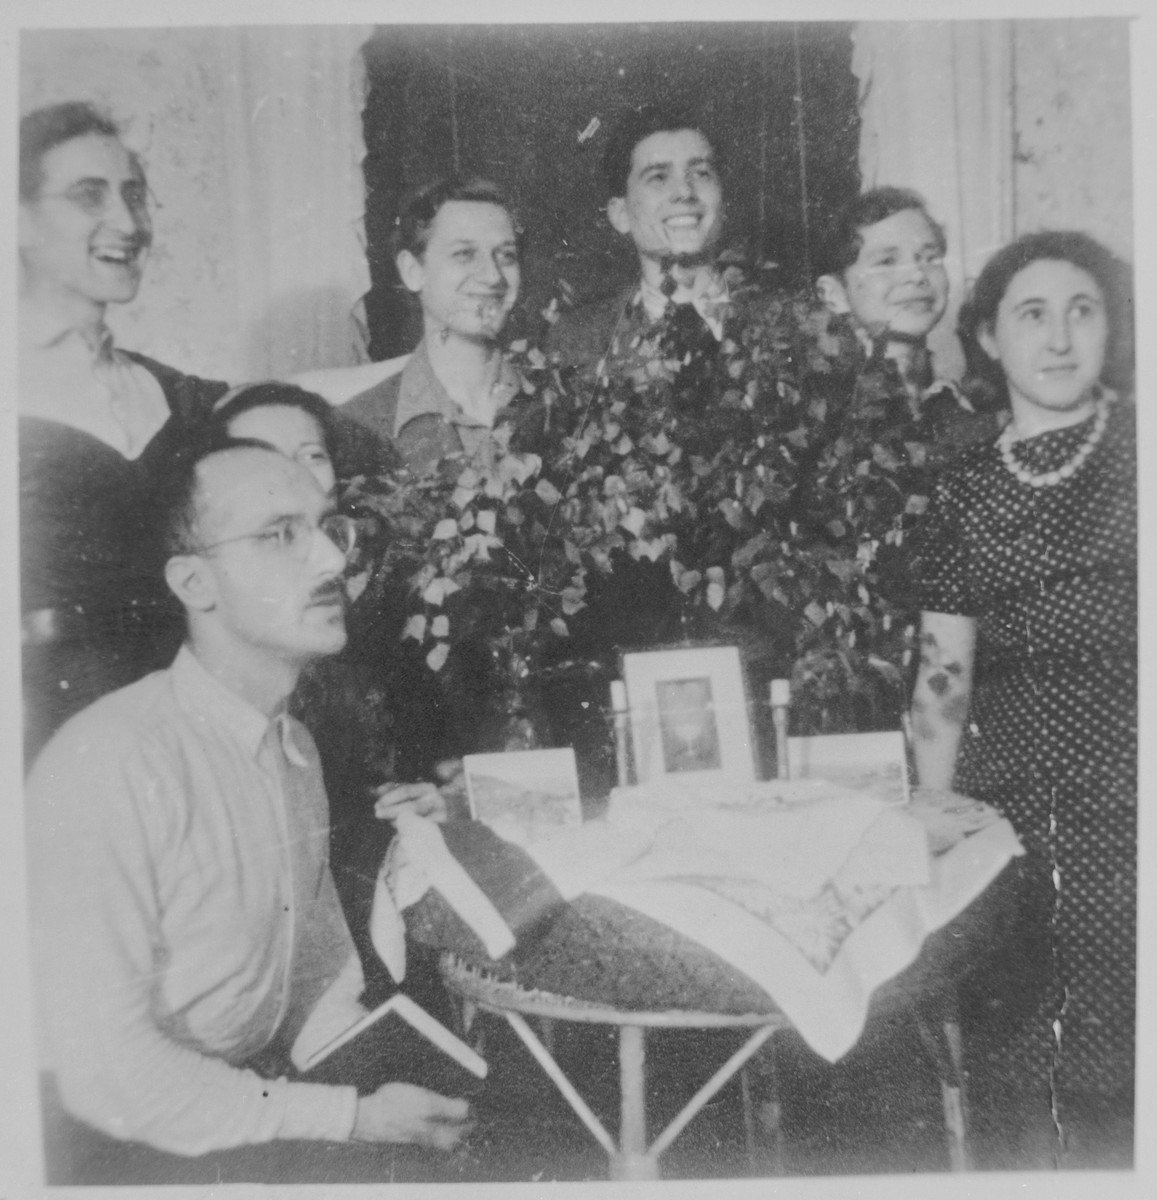 Members of the Chug Halutzi underground Zionist youth group celebrate Shavuot at the home of Gad and Miriam Beck.   Pictured from left to right are: Gad Beck, Yizchak Schwersenz, Edith (Ewo) Wolff (hidden), Zwi Abrahamssohn, Poldi Chones, David Billard, and Miriam Beck.